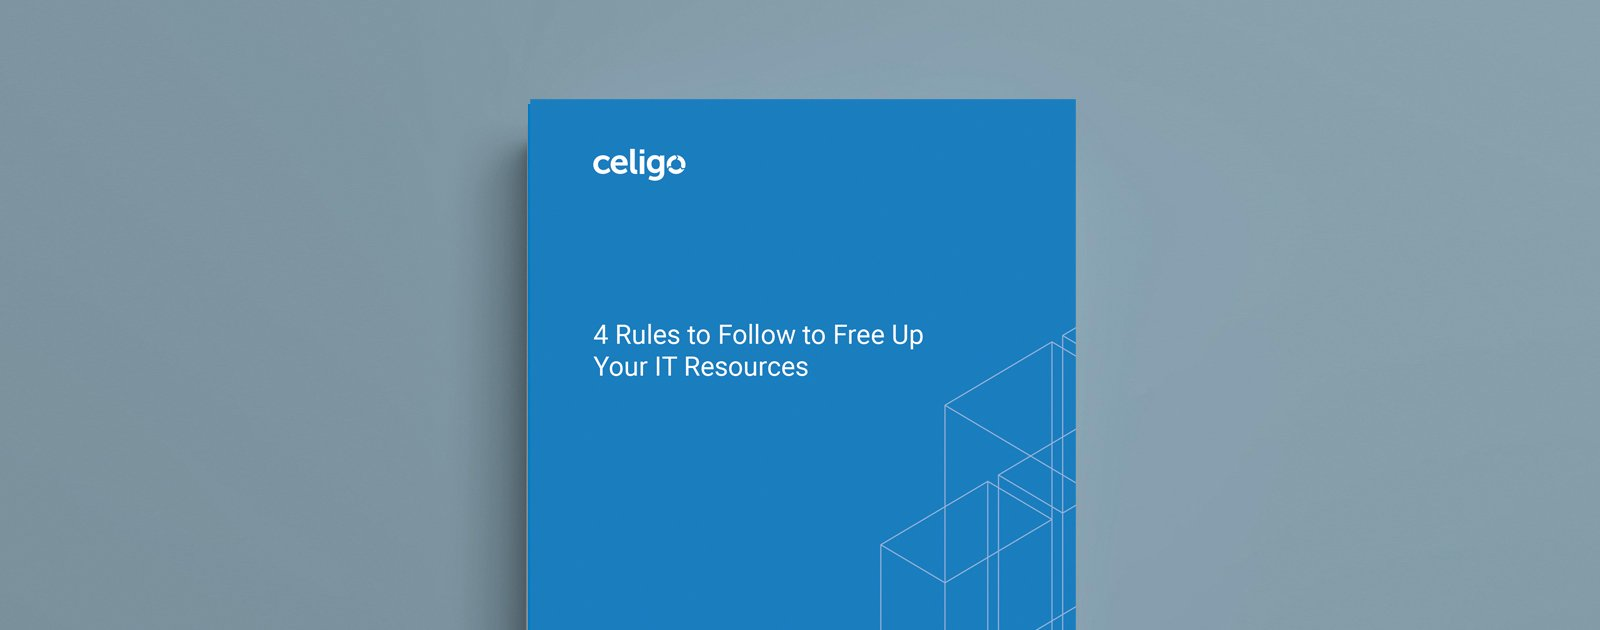 4 Rules to Follow to Free Up Your IT Resources